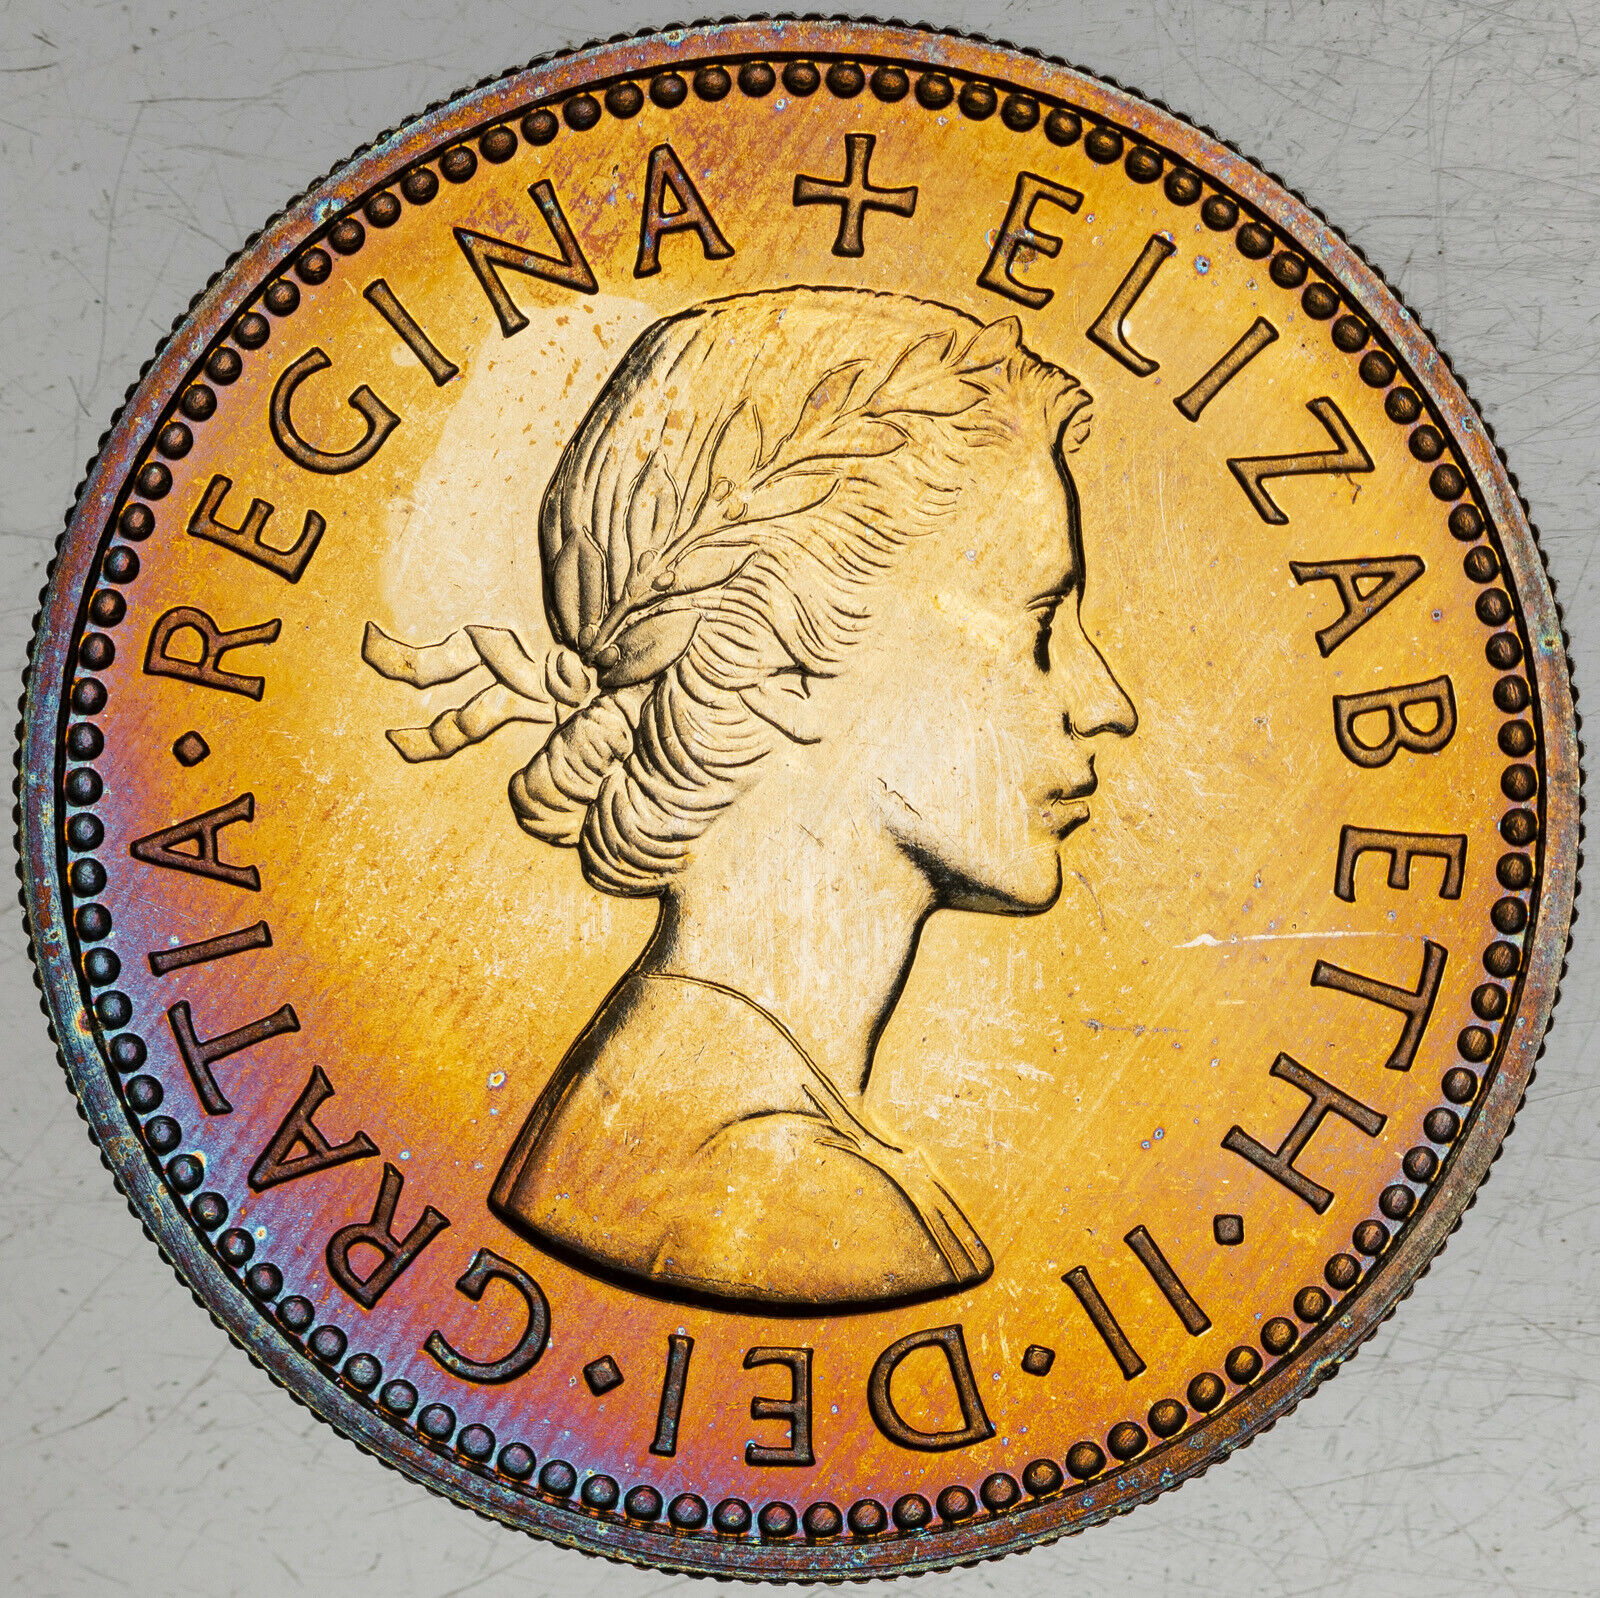 1970 GREAT BRITAIN 1 SHILLING PROOF VIBRANT NEON COLOR BU UNC TONED APPEAL MR  - $74.99